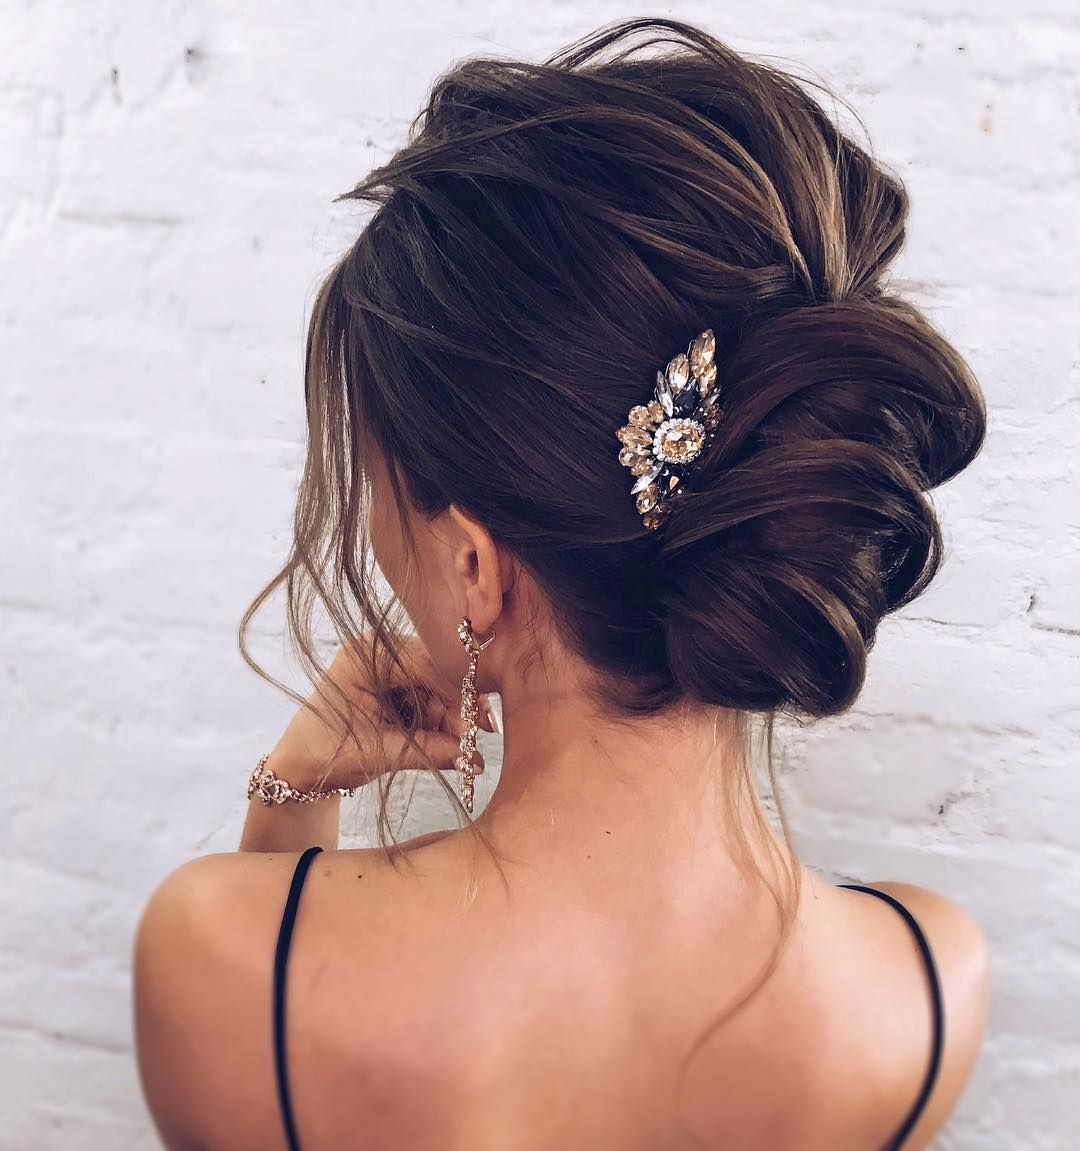 Romantic wedding hairstyles and makeup you should not ignore